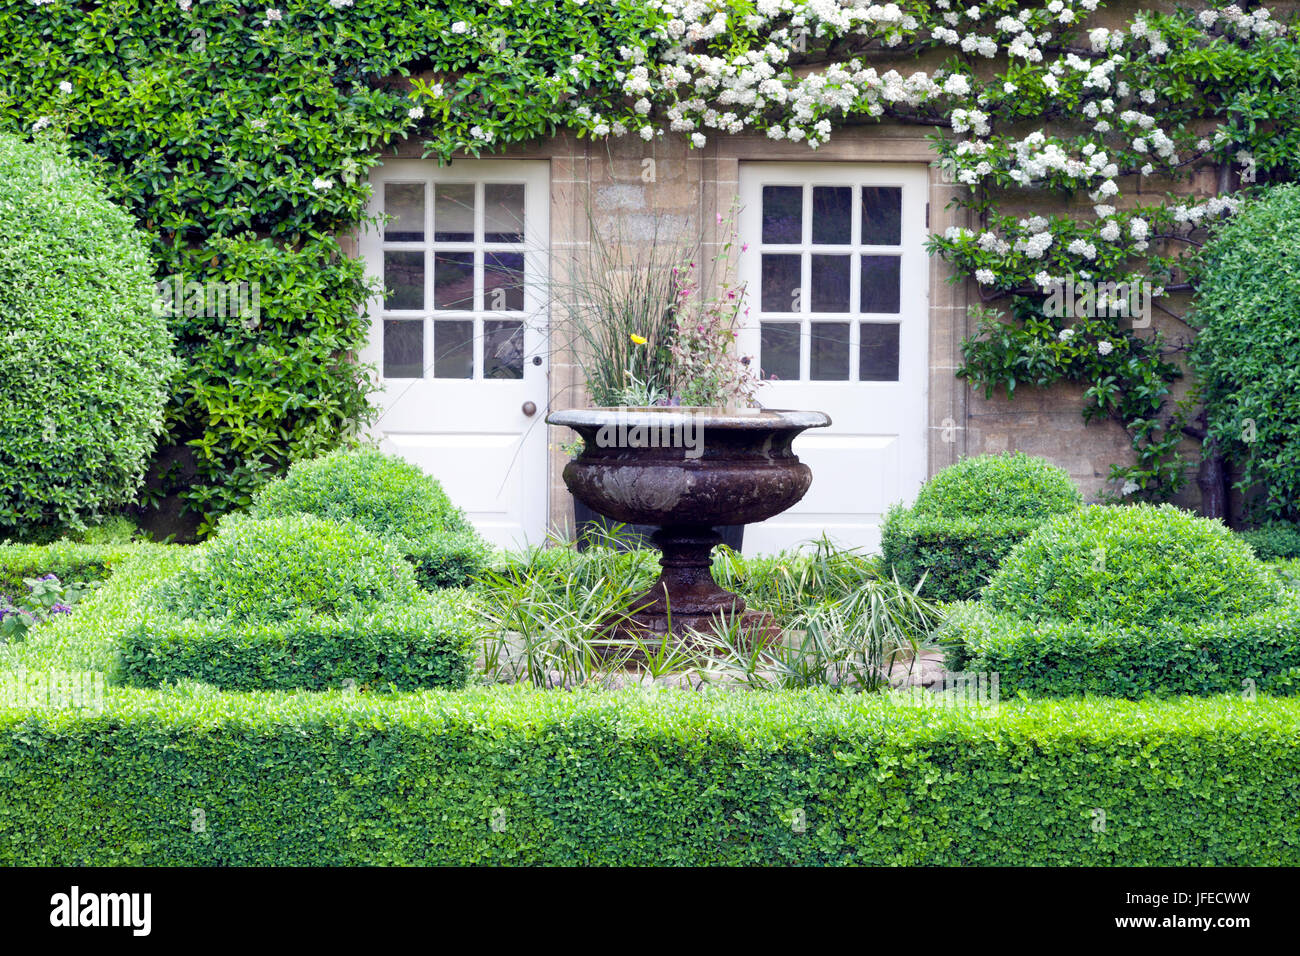 Flower Vase In Green Topiary Garden In Front Of A Stone English Stock Photo Alamy